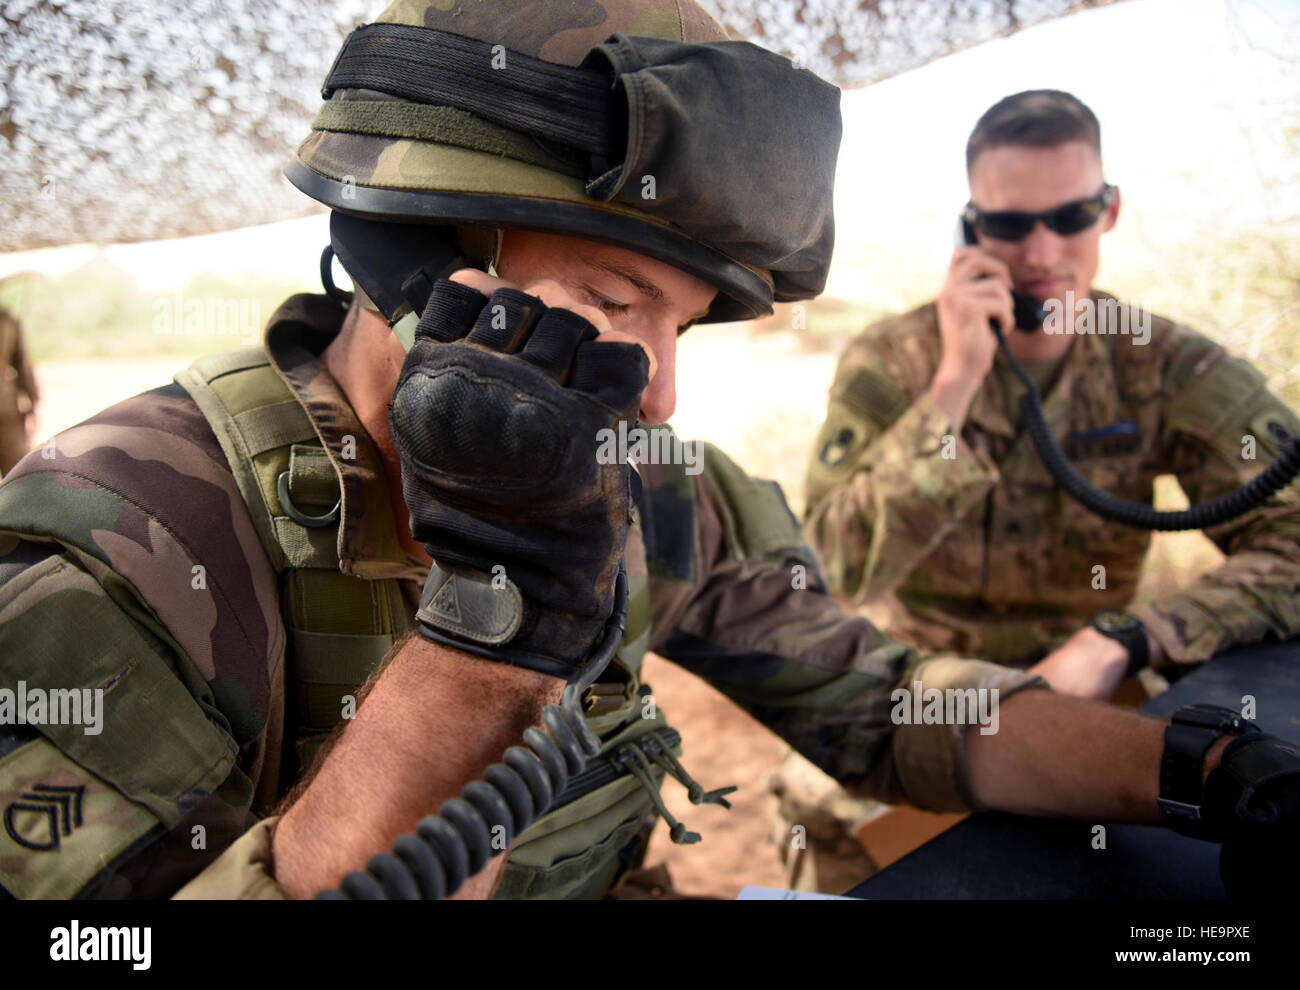 A French Army Soldier simulates calling in suspicious activity March 31, 2016, during the patrolling portion of Stock Photo